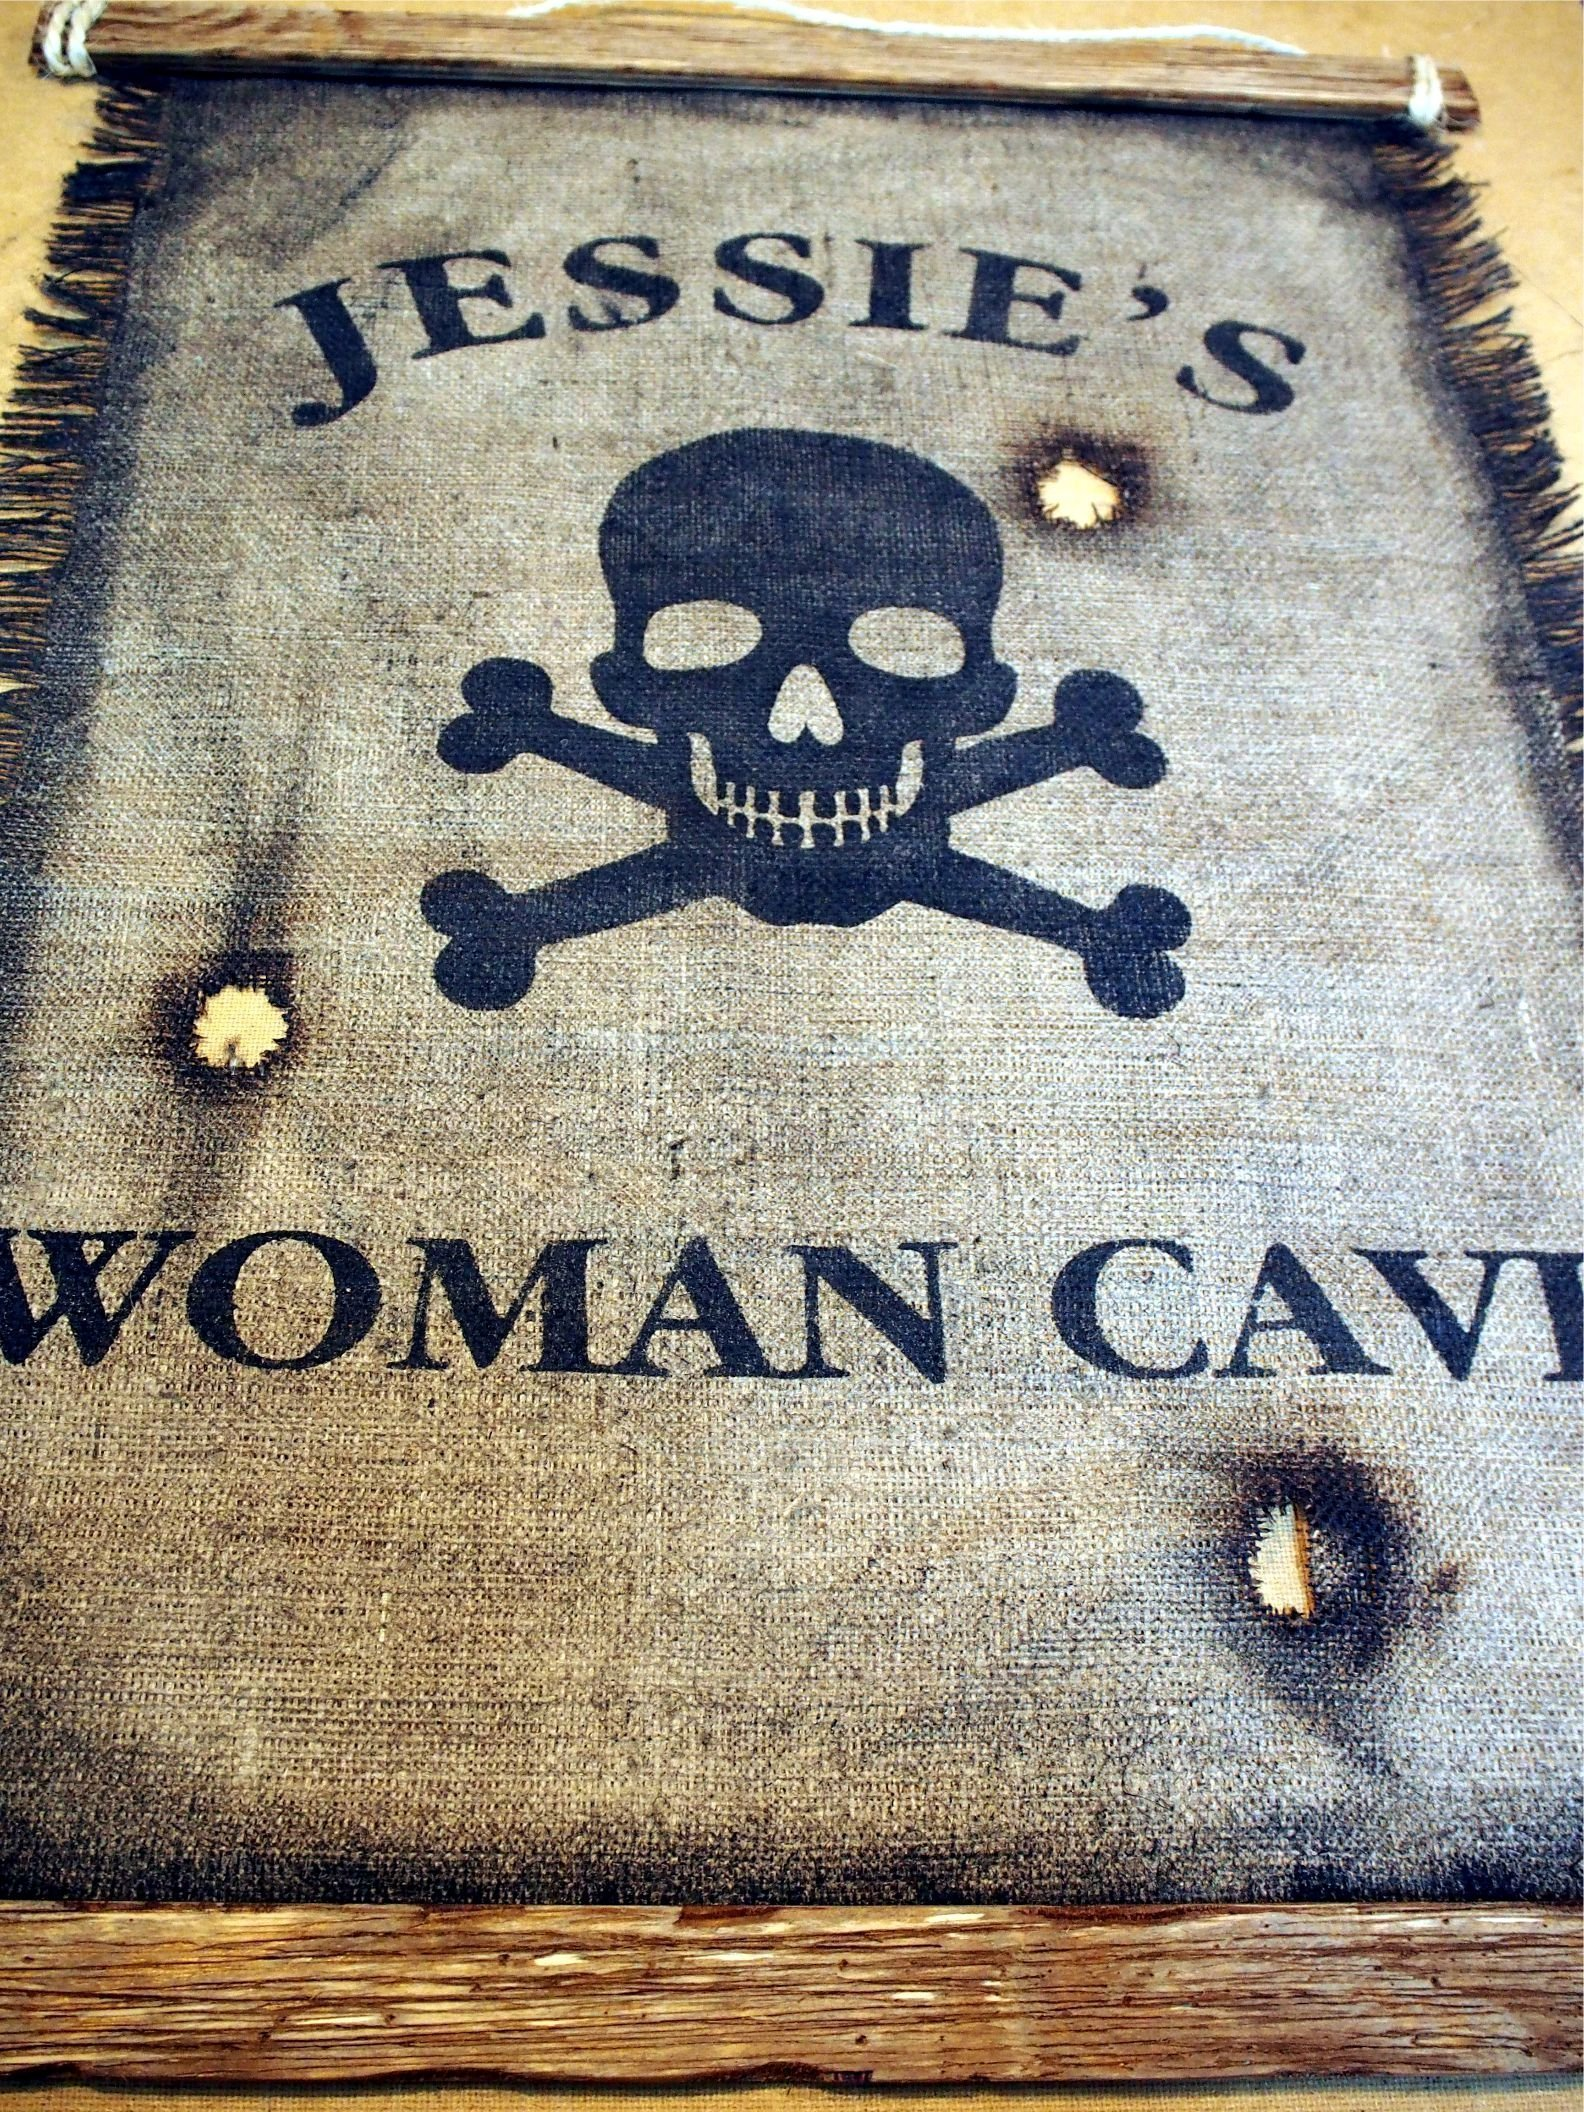 Custom Flag wall decor made of worn out burlap and wood | Rustic Decor | Pirate flag Wall art | Personalized Gift | Man Cave, Home Bar, Boys Room by Woodcraft City (Image #6)